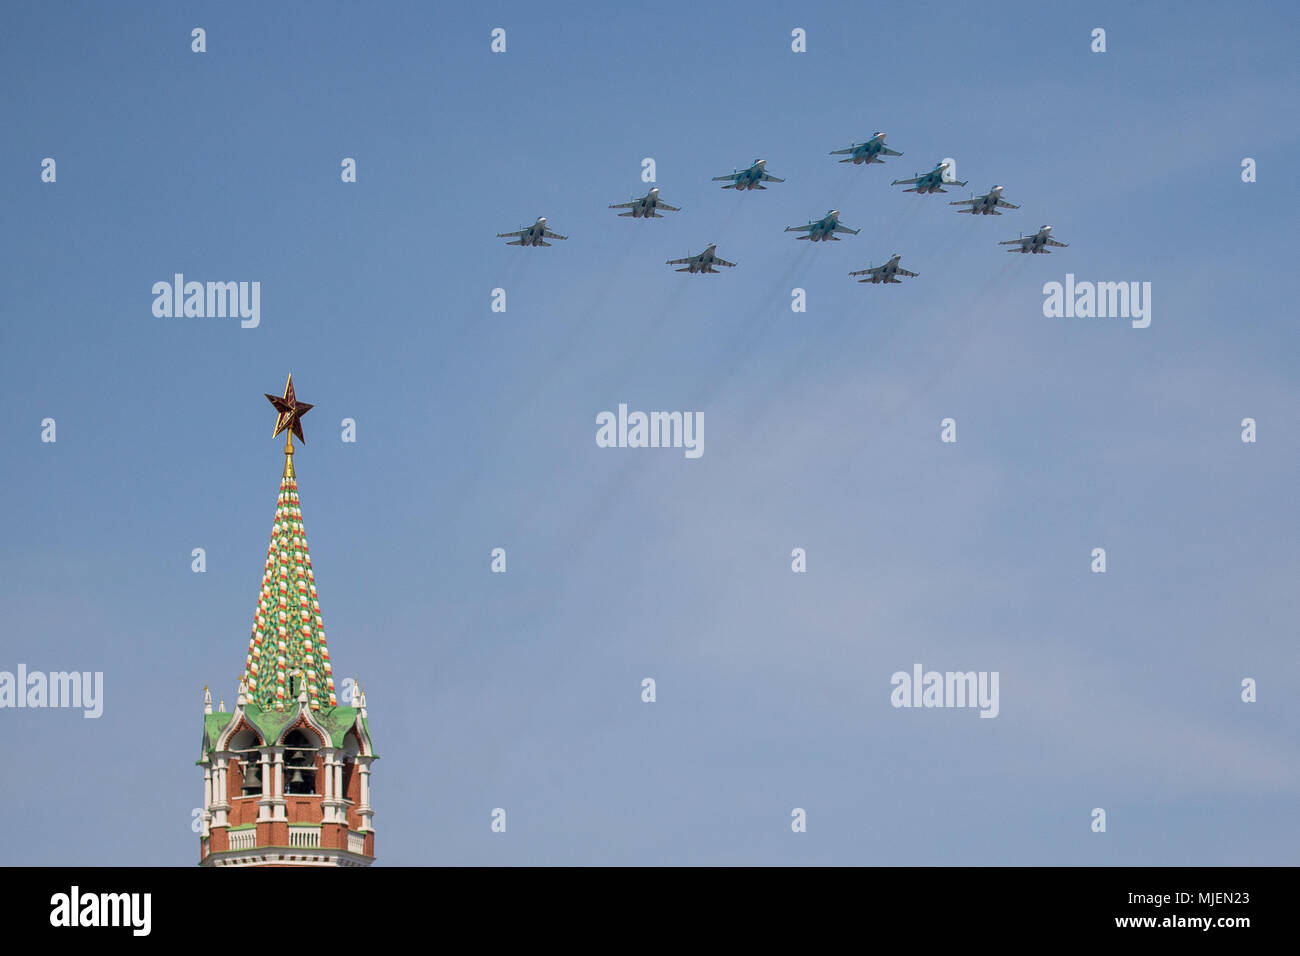 Moscow, Russia. 4th May, 2018. Russian Air Force multi-purpose fighters Sukhoi Su-34, Sukhoi-Su35S, Sukhoi Su-30SM and Sukhoi Su-27 aircraft fly in formation during a rehearsal of the upcoming Victory Day air show marking the 73rd anniversary of the victory over Nazi Germany in the 1941-45 Great Patriotic War, the Eastern Front of World War II. Credit: Victor Vytolskiy/Alamy Live News - Stock Image